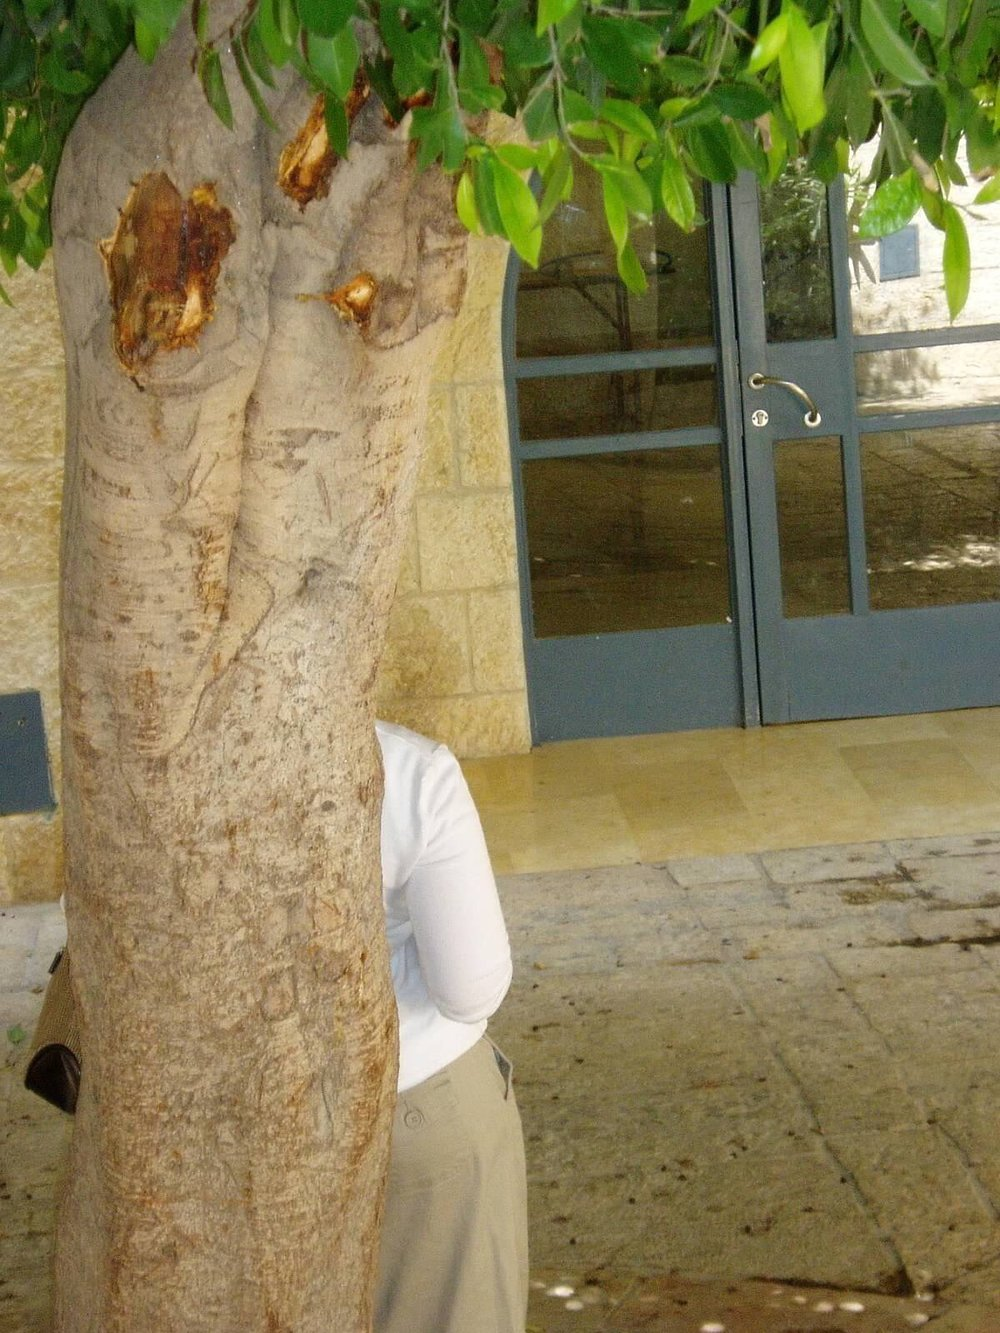 Simcha even wanted to tell stories with his shots... Ilana, stand behind that tree... He gave good direction .